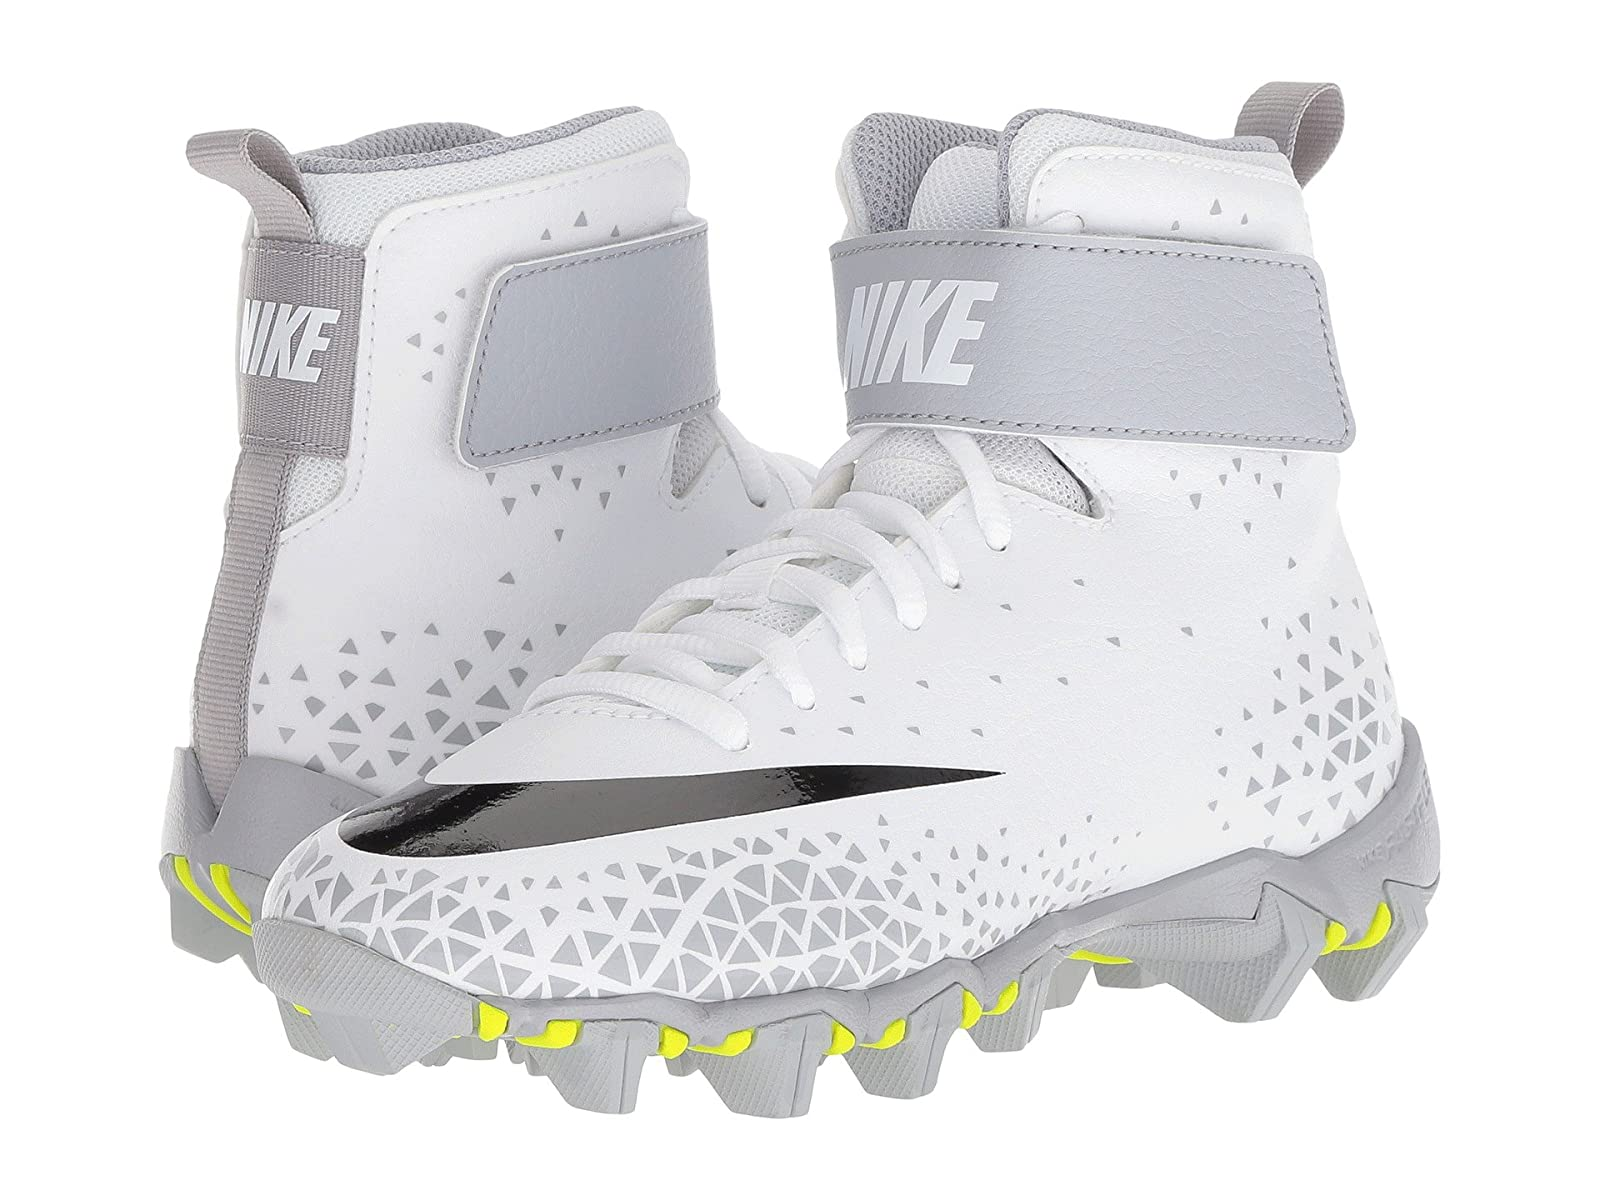 Nike Kids Force Savage Shark Football (Toddler/Little Kid/Big Kid)Atmospheric grades have affordable shoes